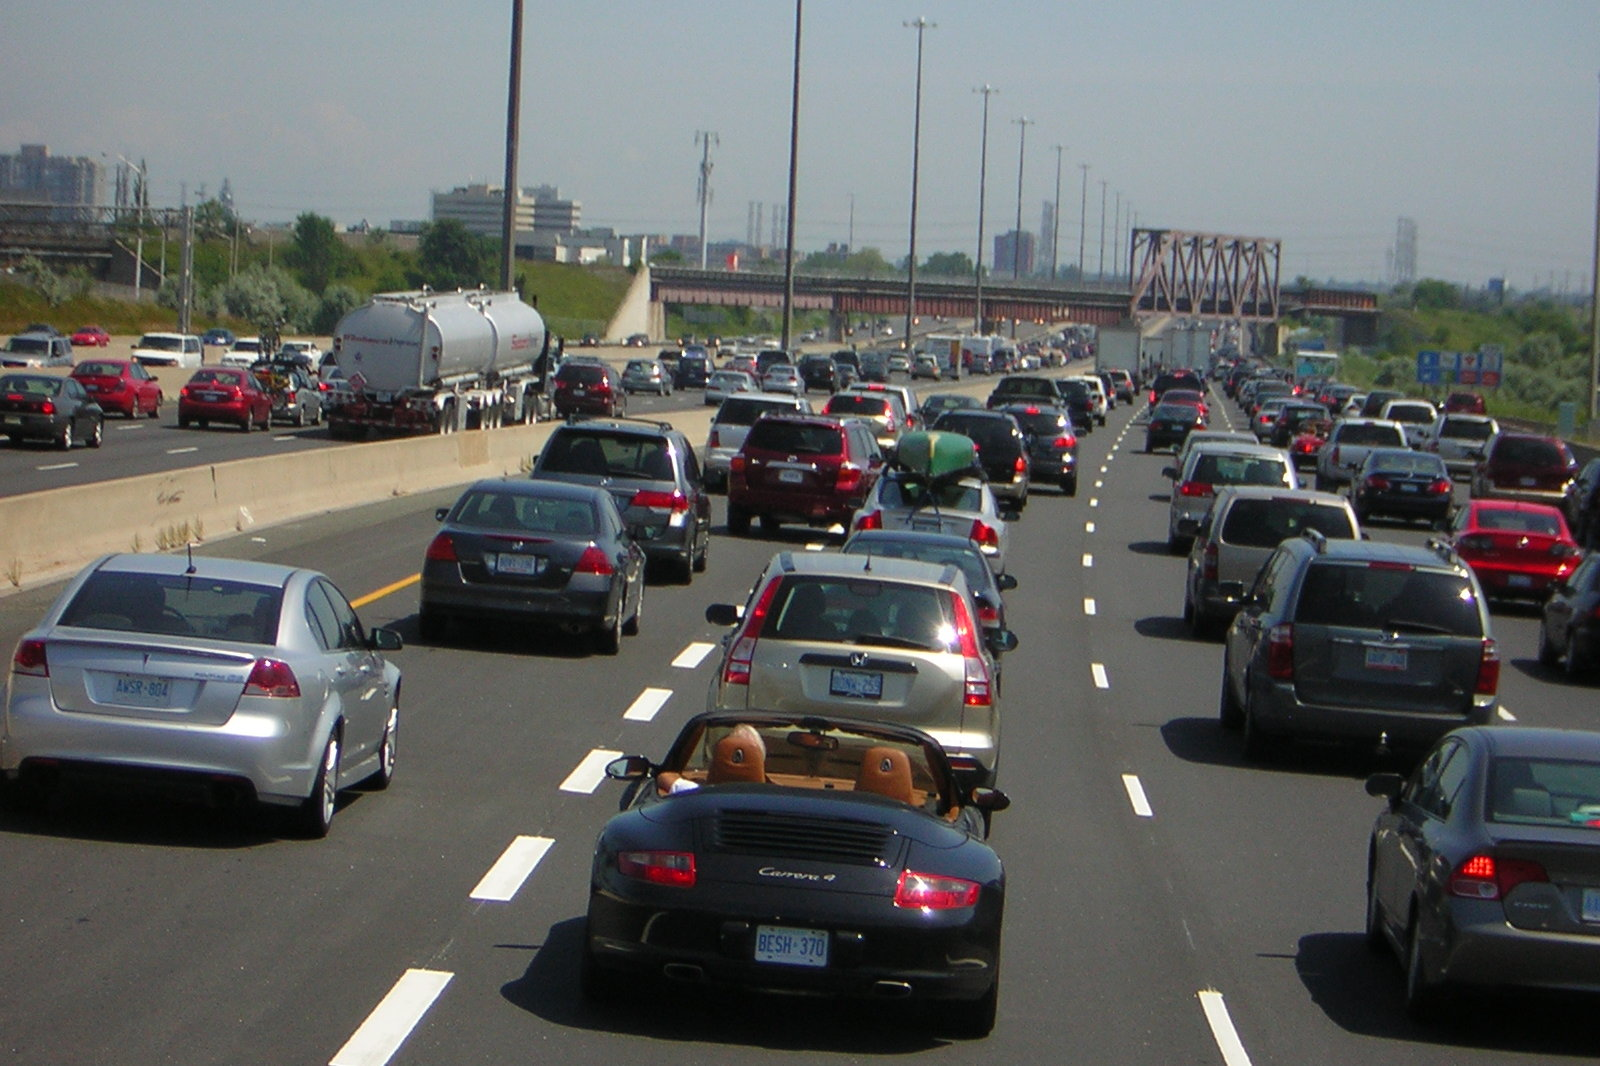 A cautionary tale: Highway 401 in Toronto is gridlocked despite being up to 18 lanes wide in places